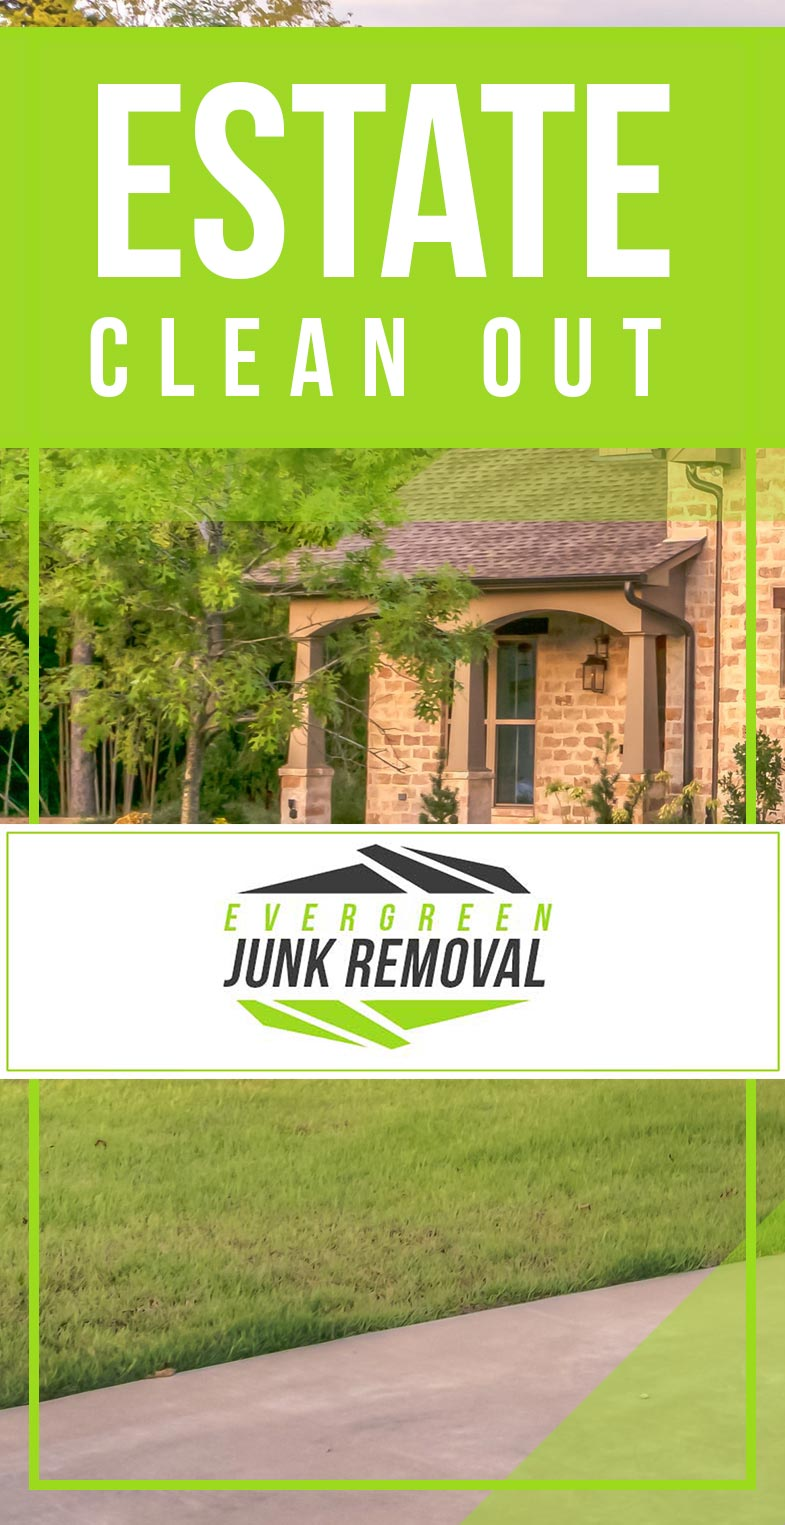 Junk Removal Washington Park FL Estate Clean Out